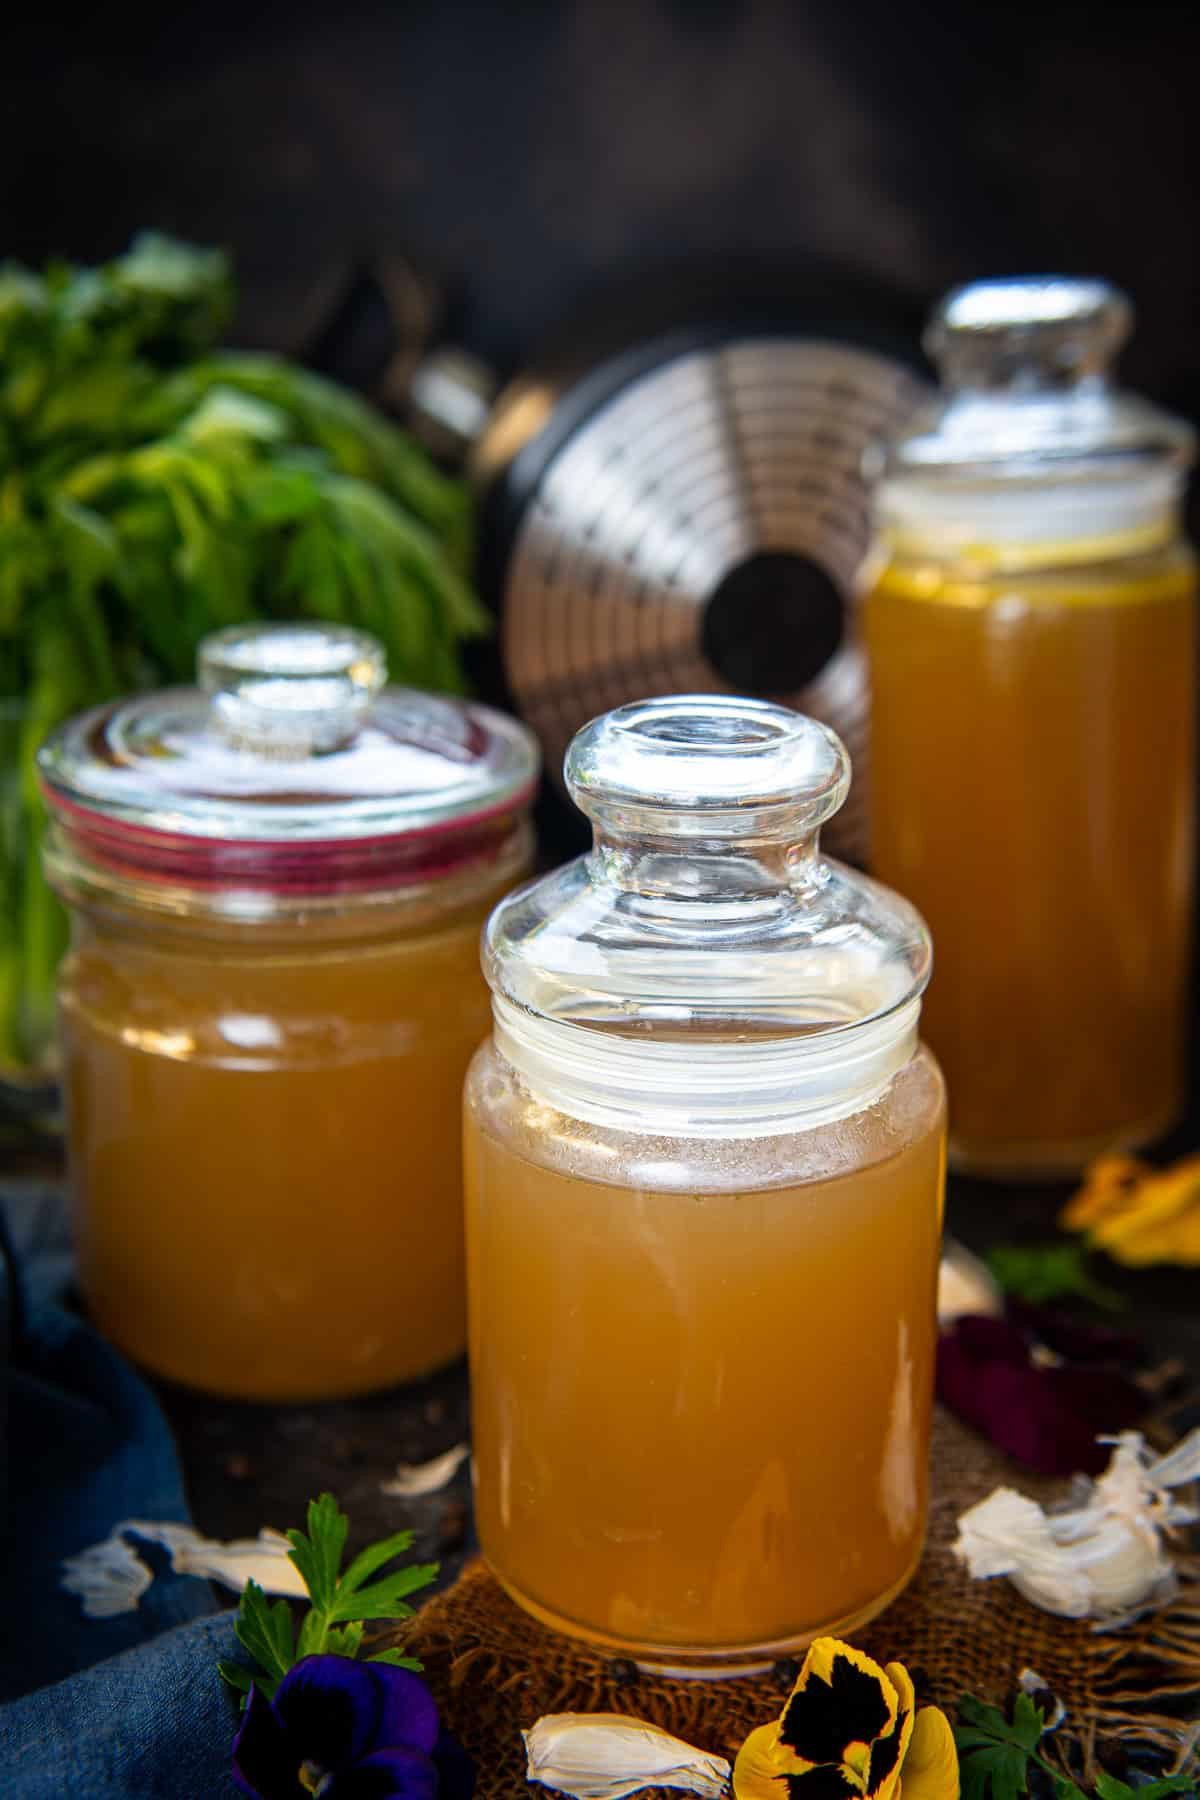 Vegetable Stock kept in glass jars.